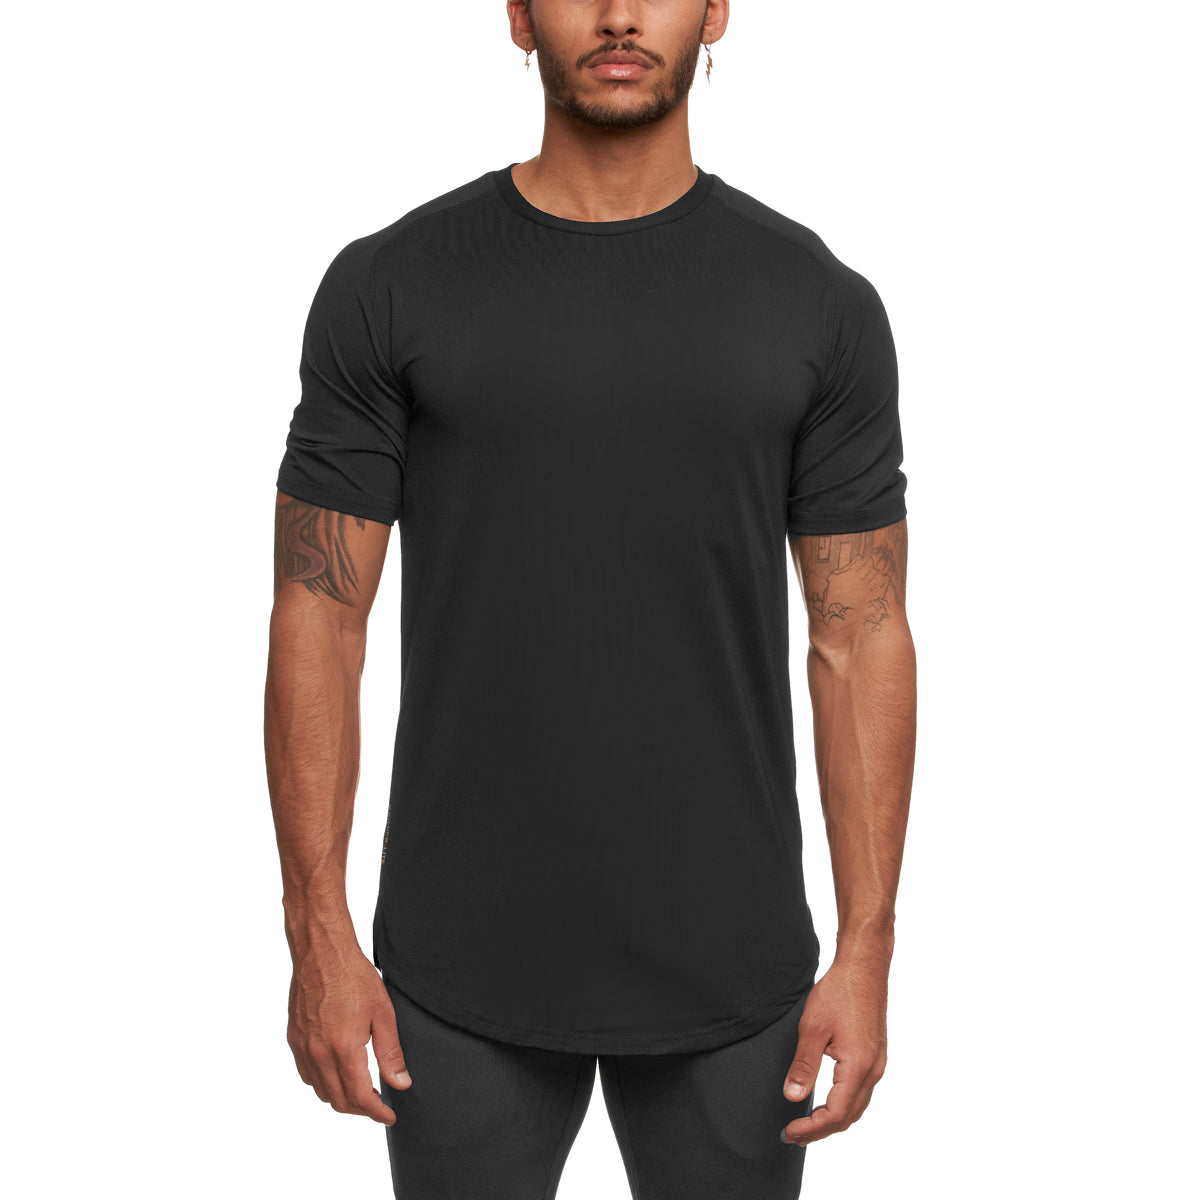 0164. Silver-Lite® Established Tee - Black